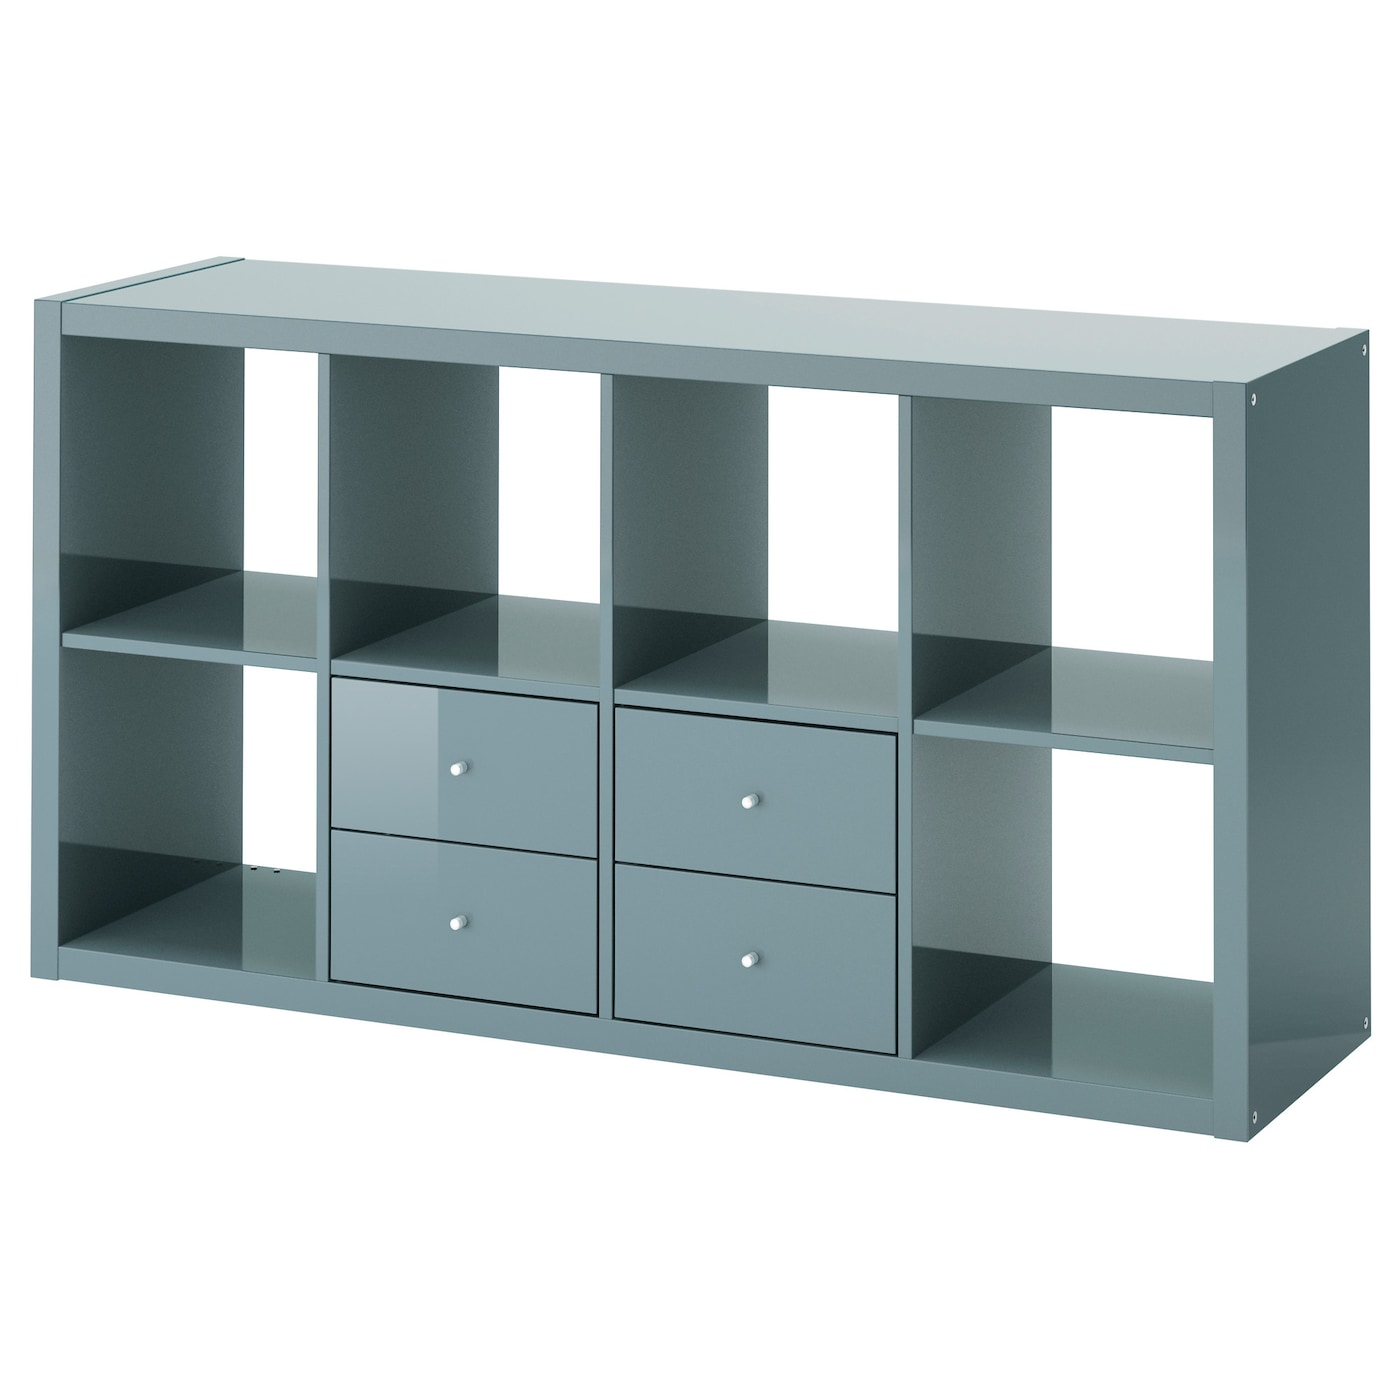 kallax shelving unit with 2 inserts high gloss grey